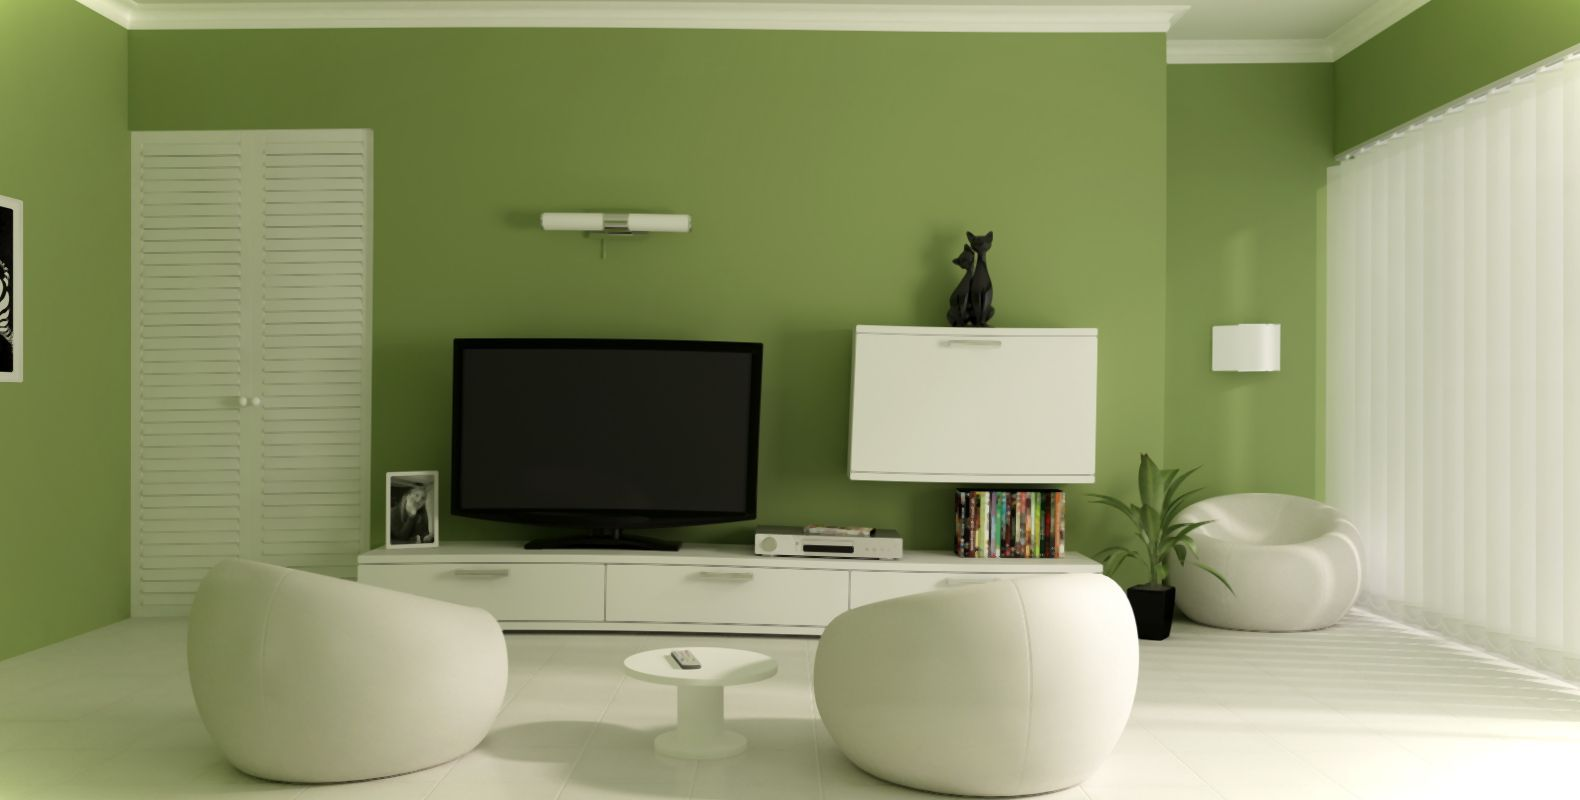 Beautiful Paint Colors Enchanting Beautiful Small Living Room Design With Green Wall Paint Color And Design Decoration